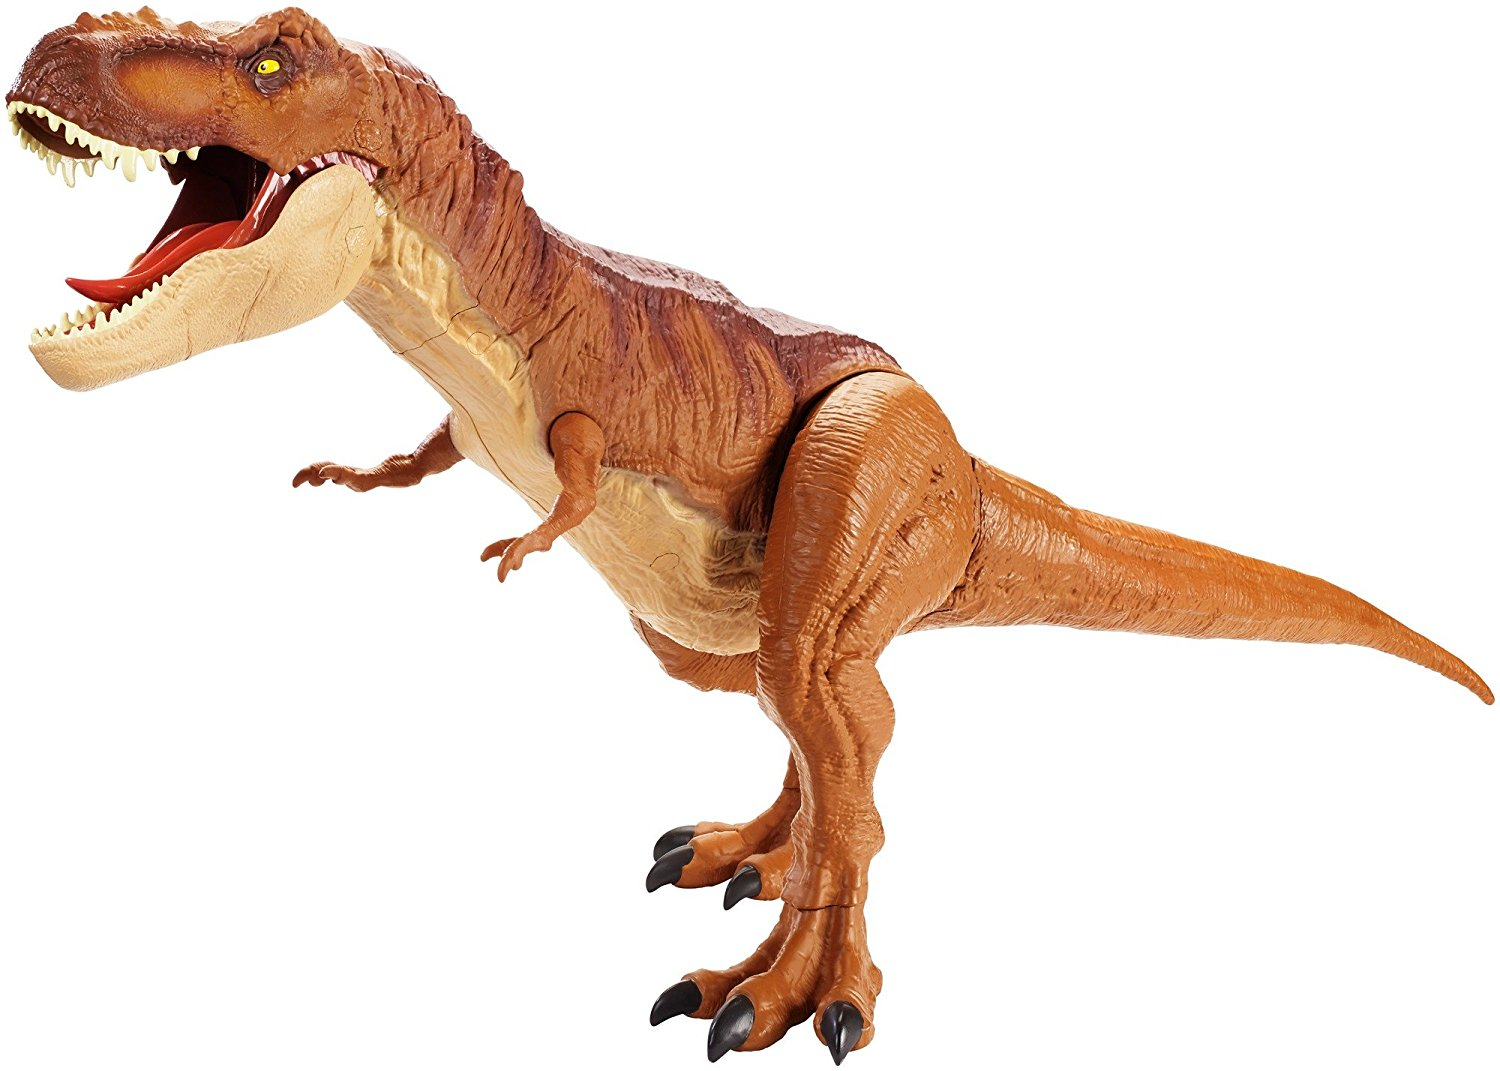 T Rex Dinosaur Toy : Jurassic world toys pre orders and new products live